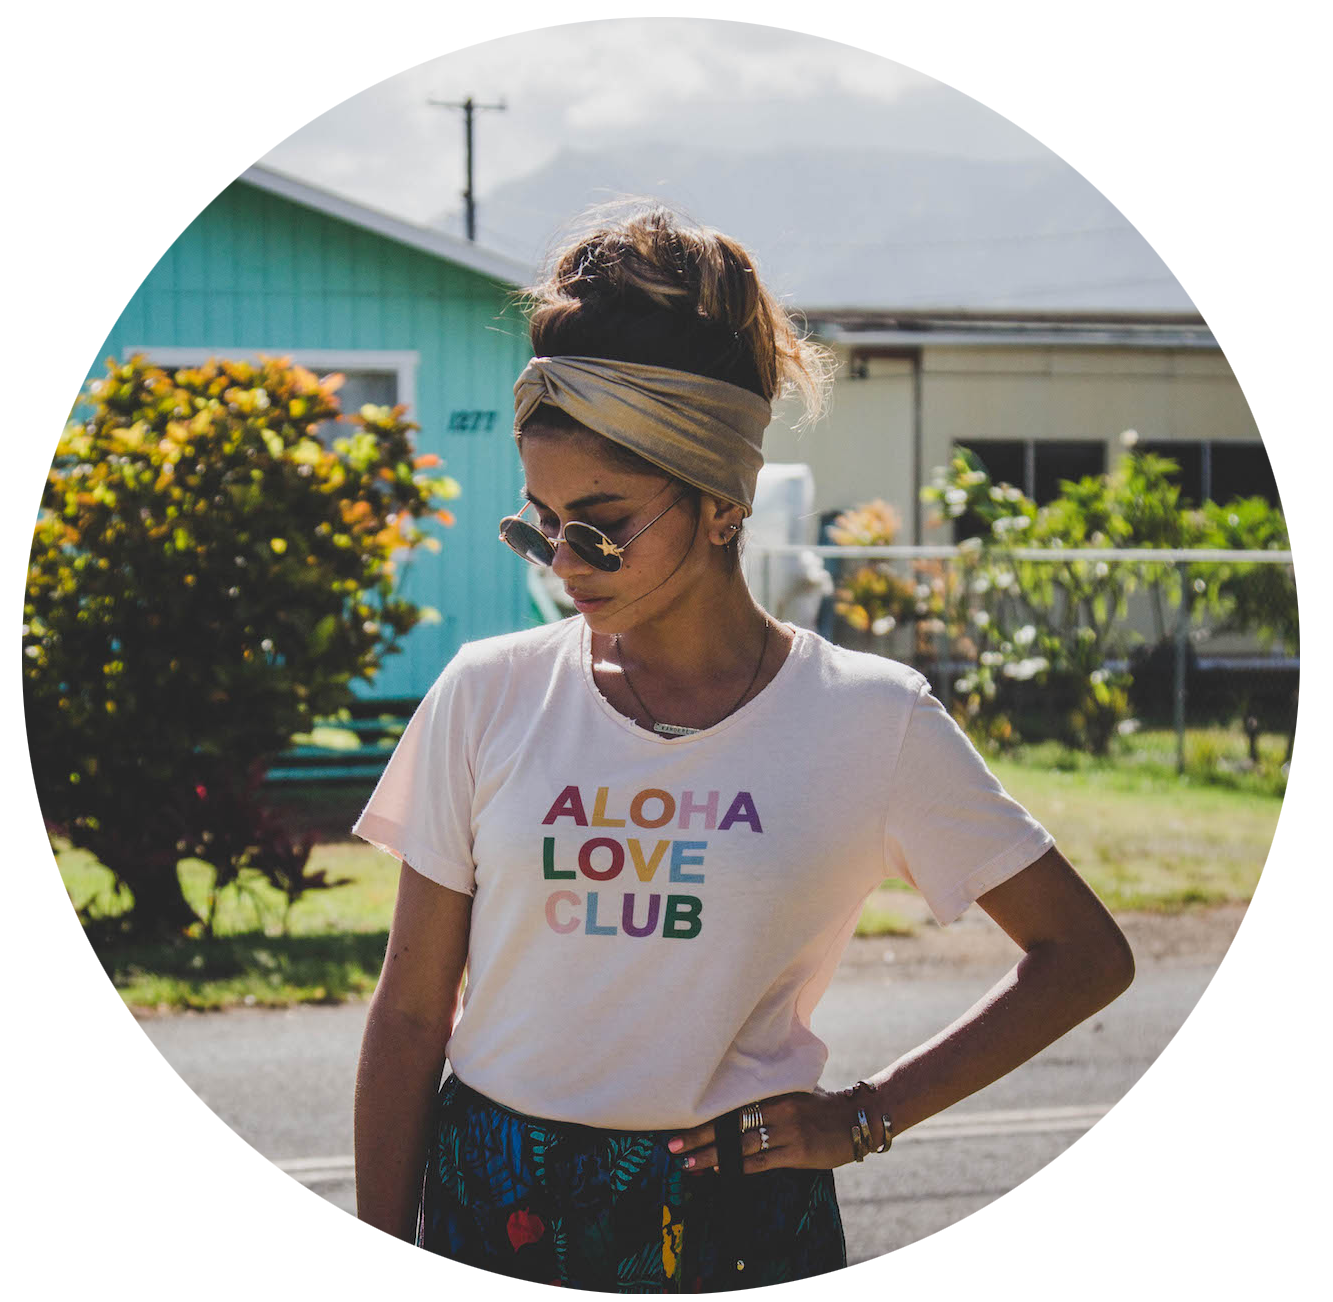 aloha-love-club-shaiyanne-dar-dolkii-hawaii.png